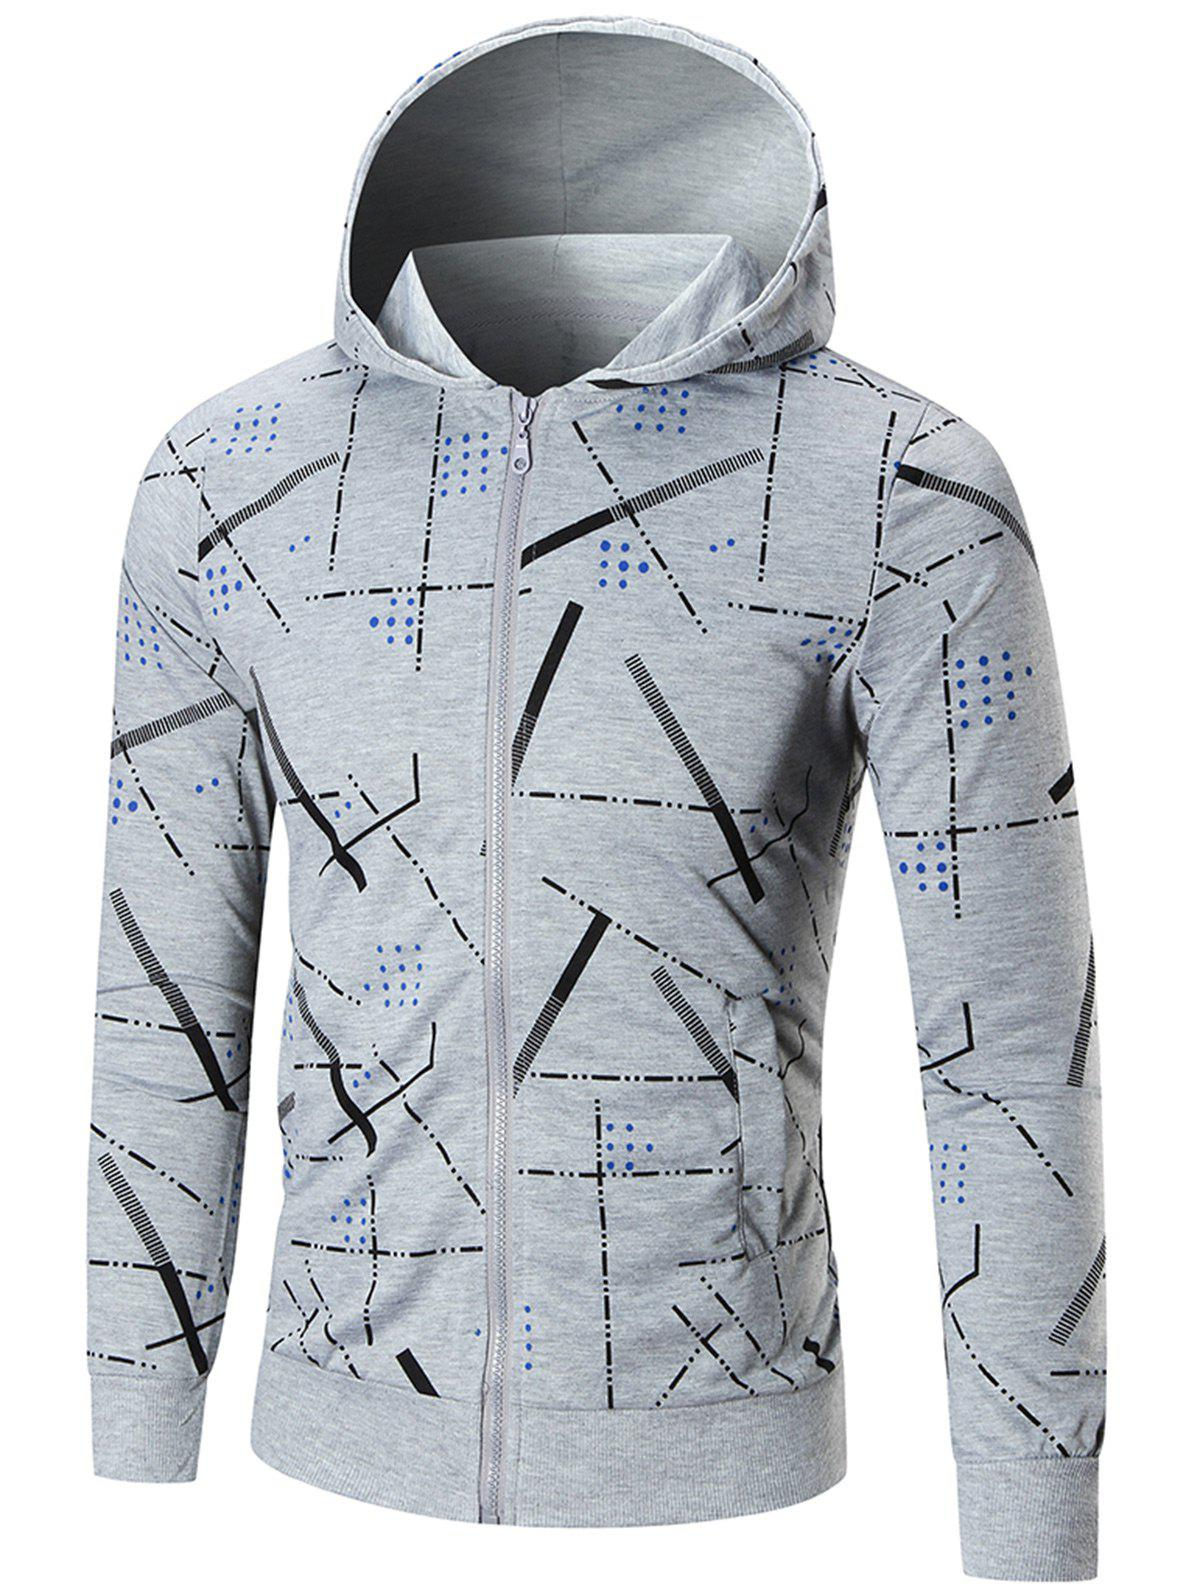 Slim Fit Printed Hoodie - GRAY 3XL